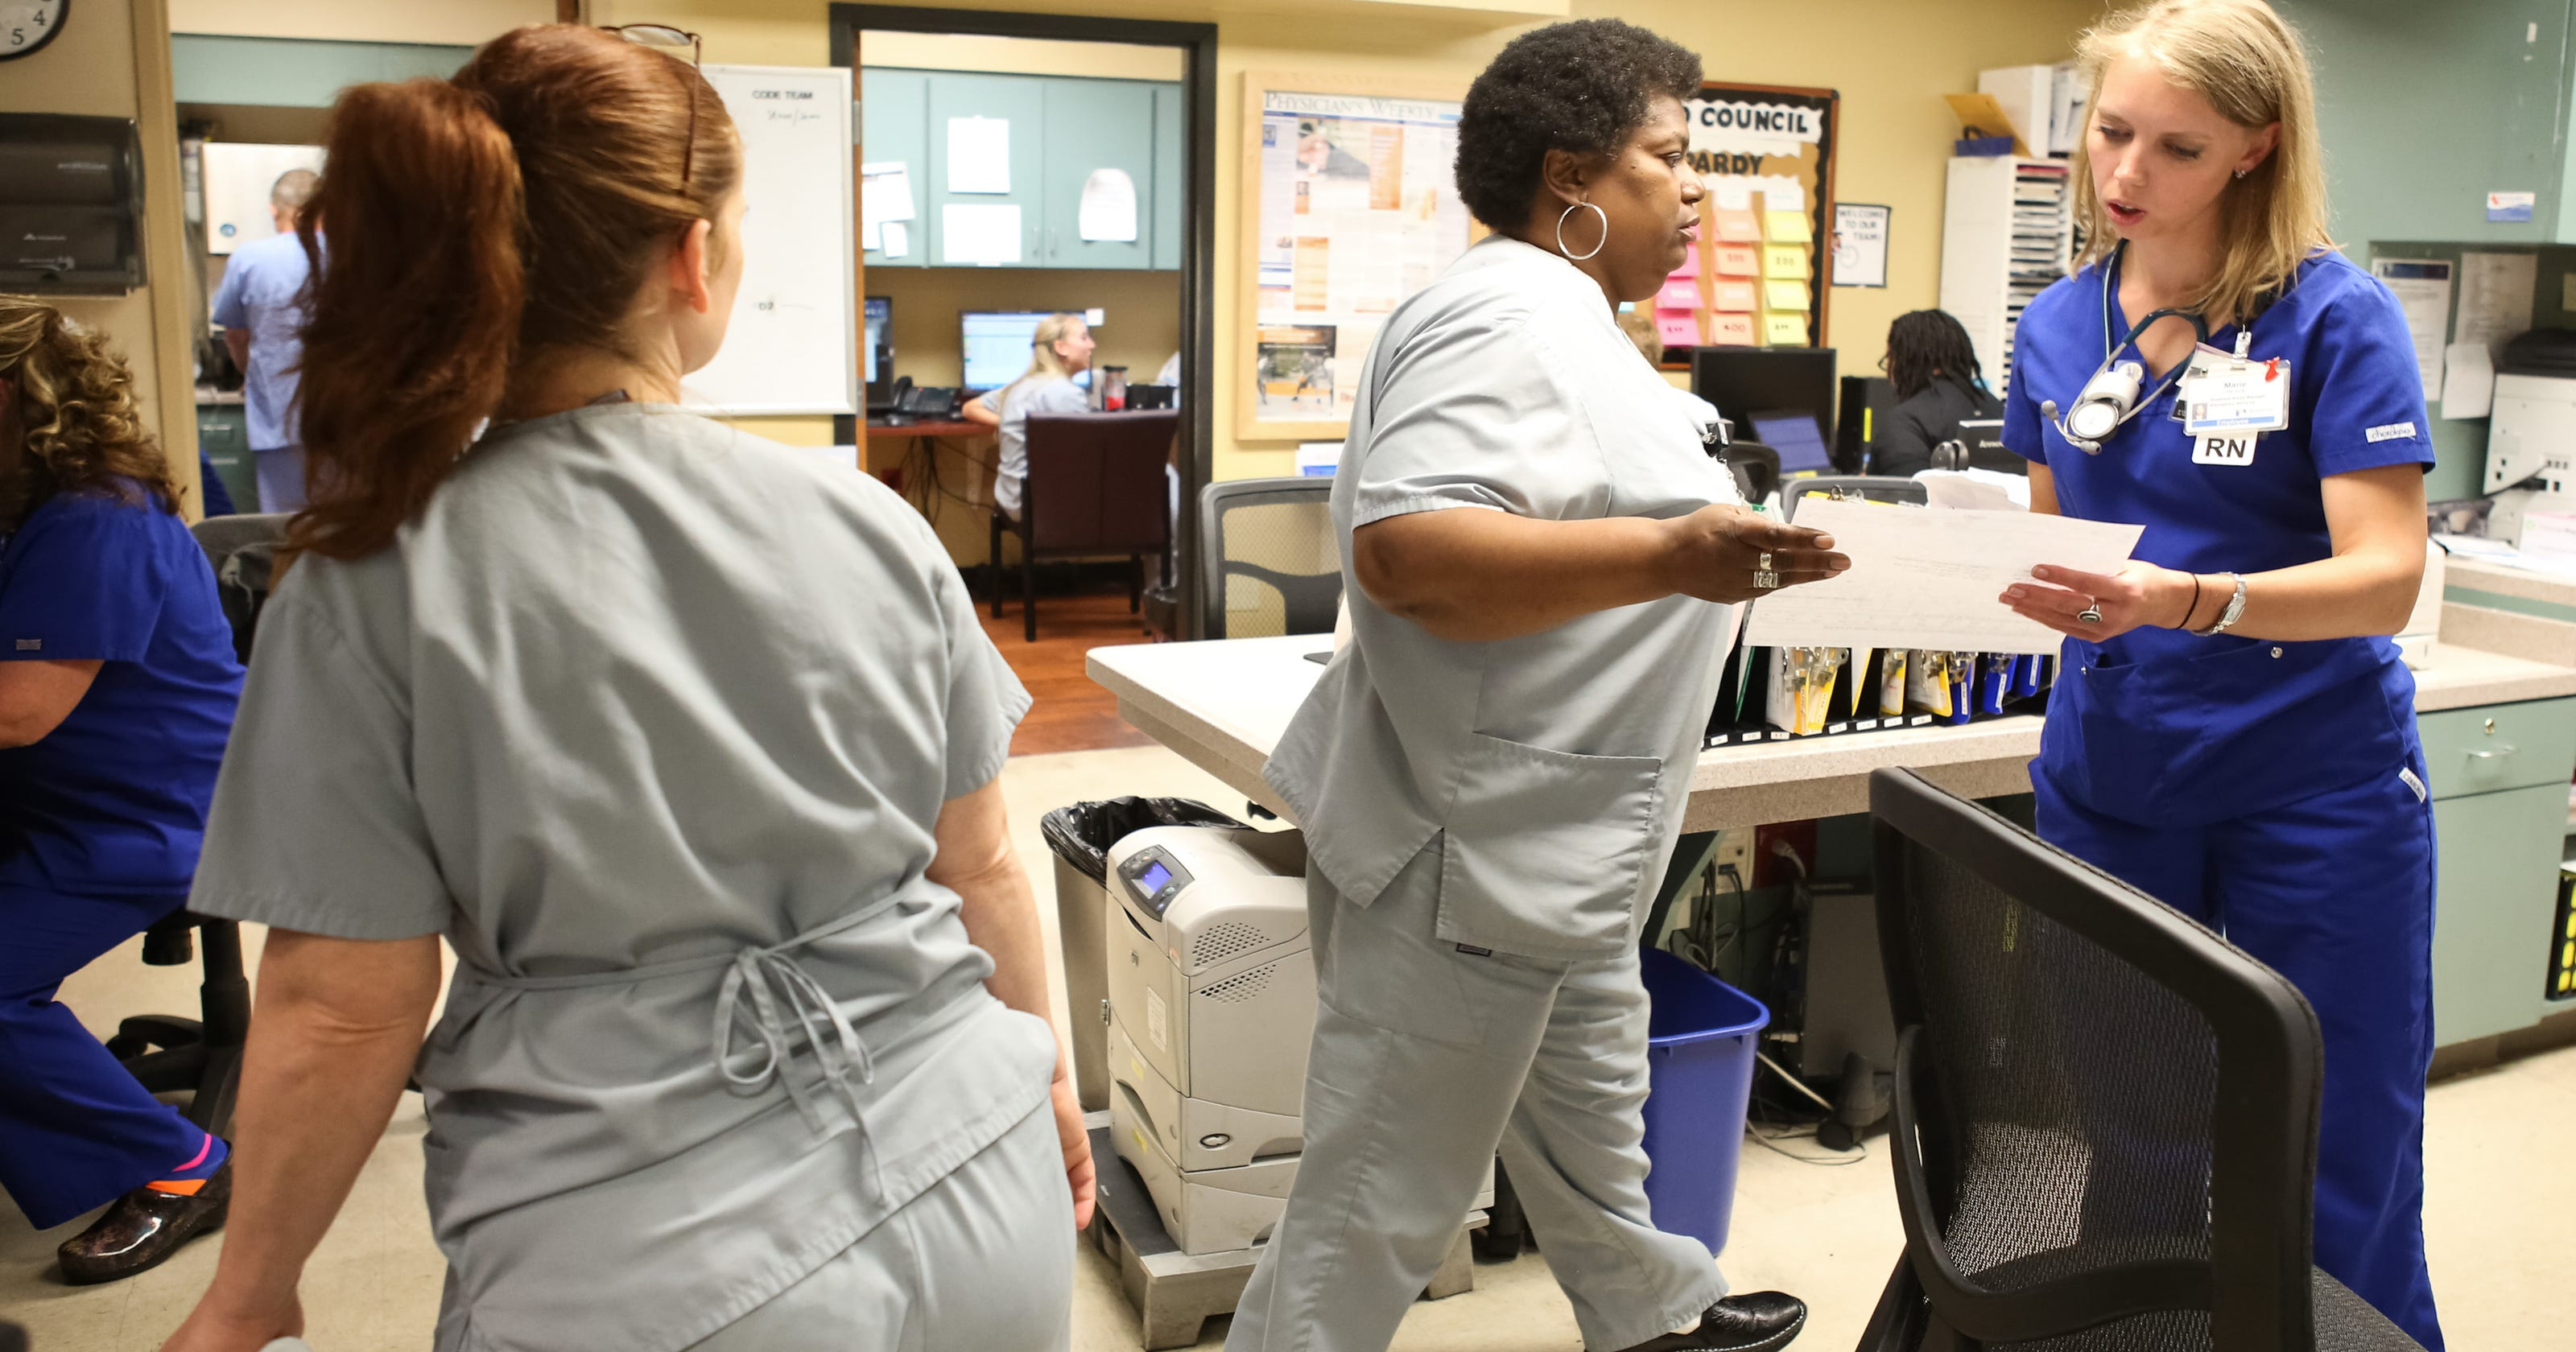 More Patients Flocking To ERs Under Obamacare